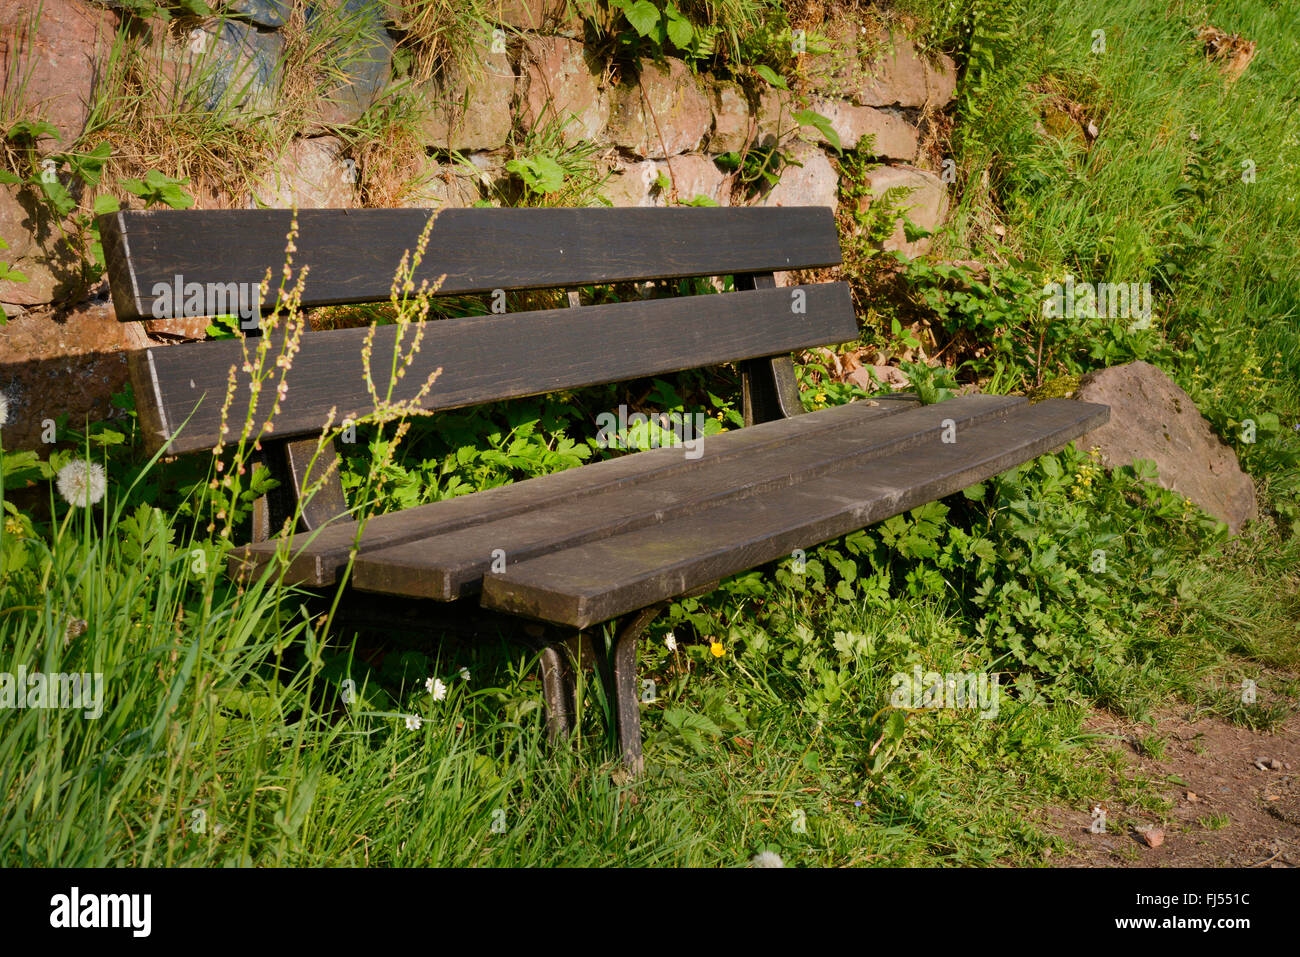 Wooden Park Benches Front Roadside Bench Stock Photos And Roadside Bench Stock Images